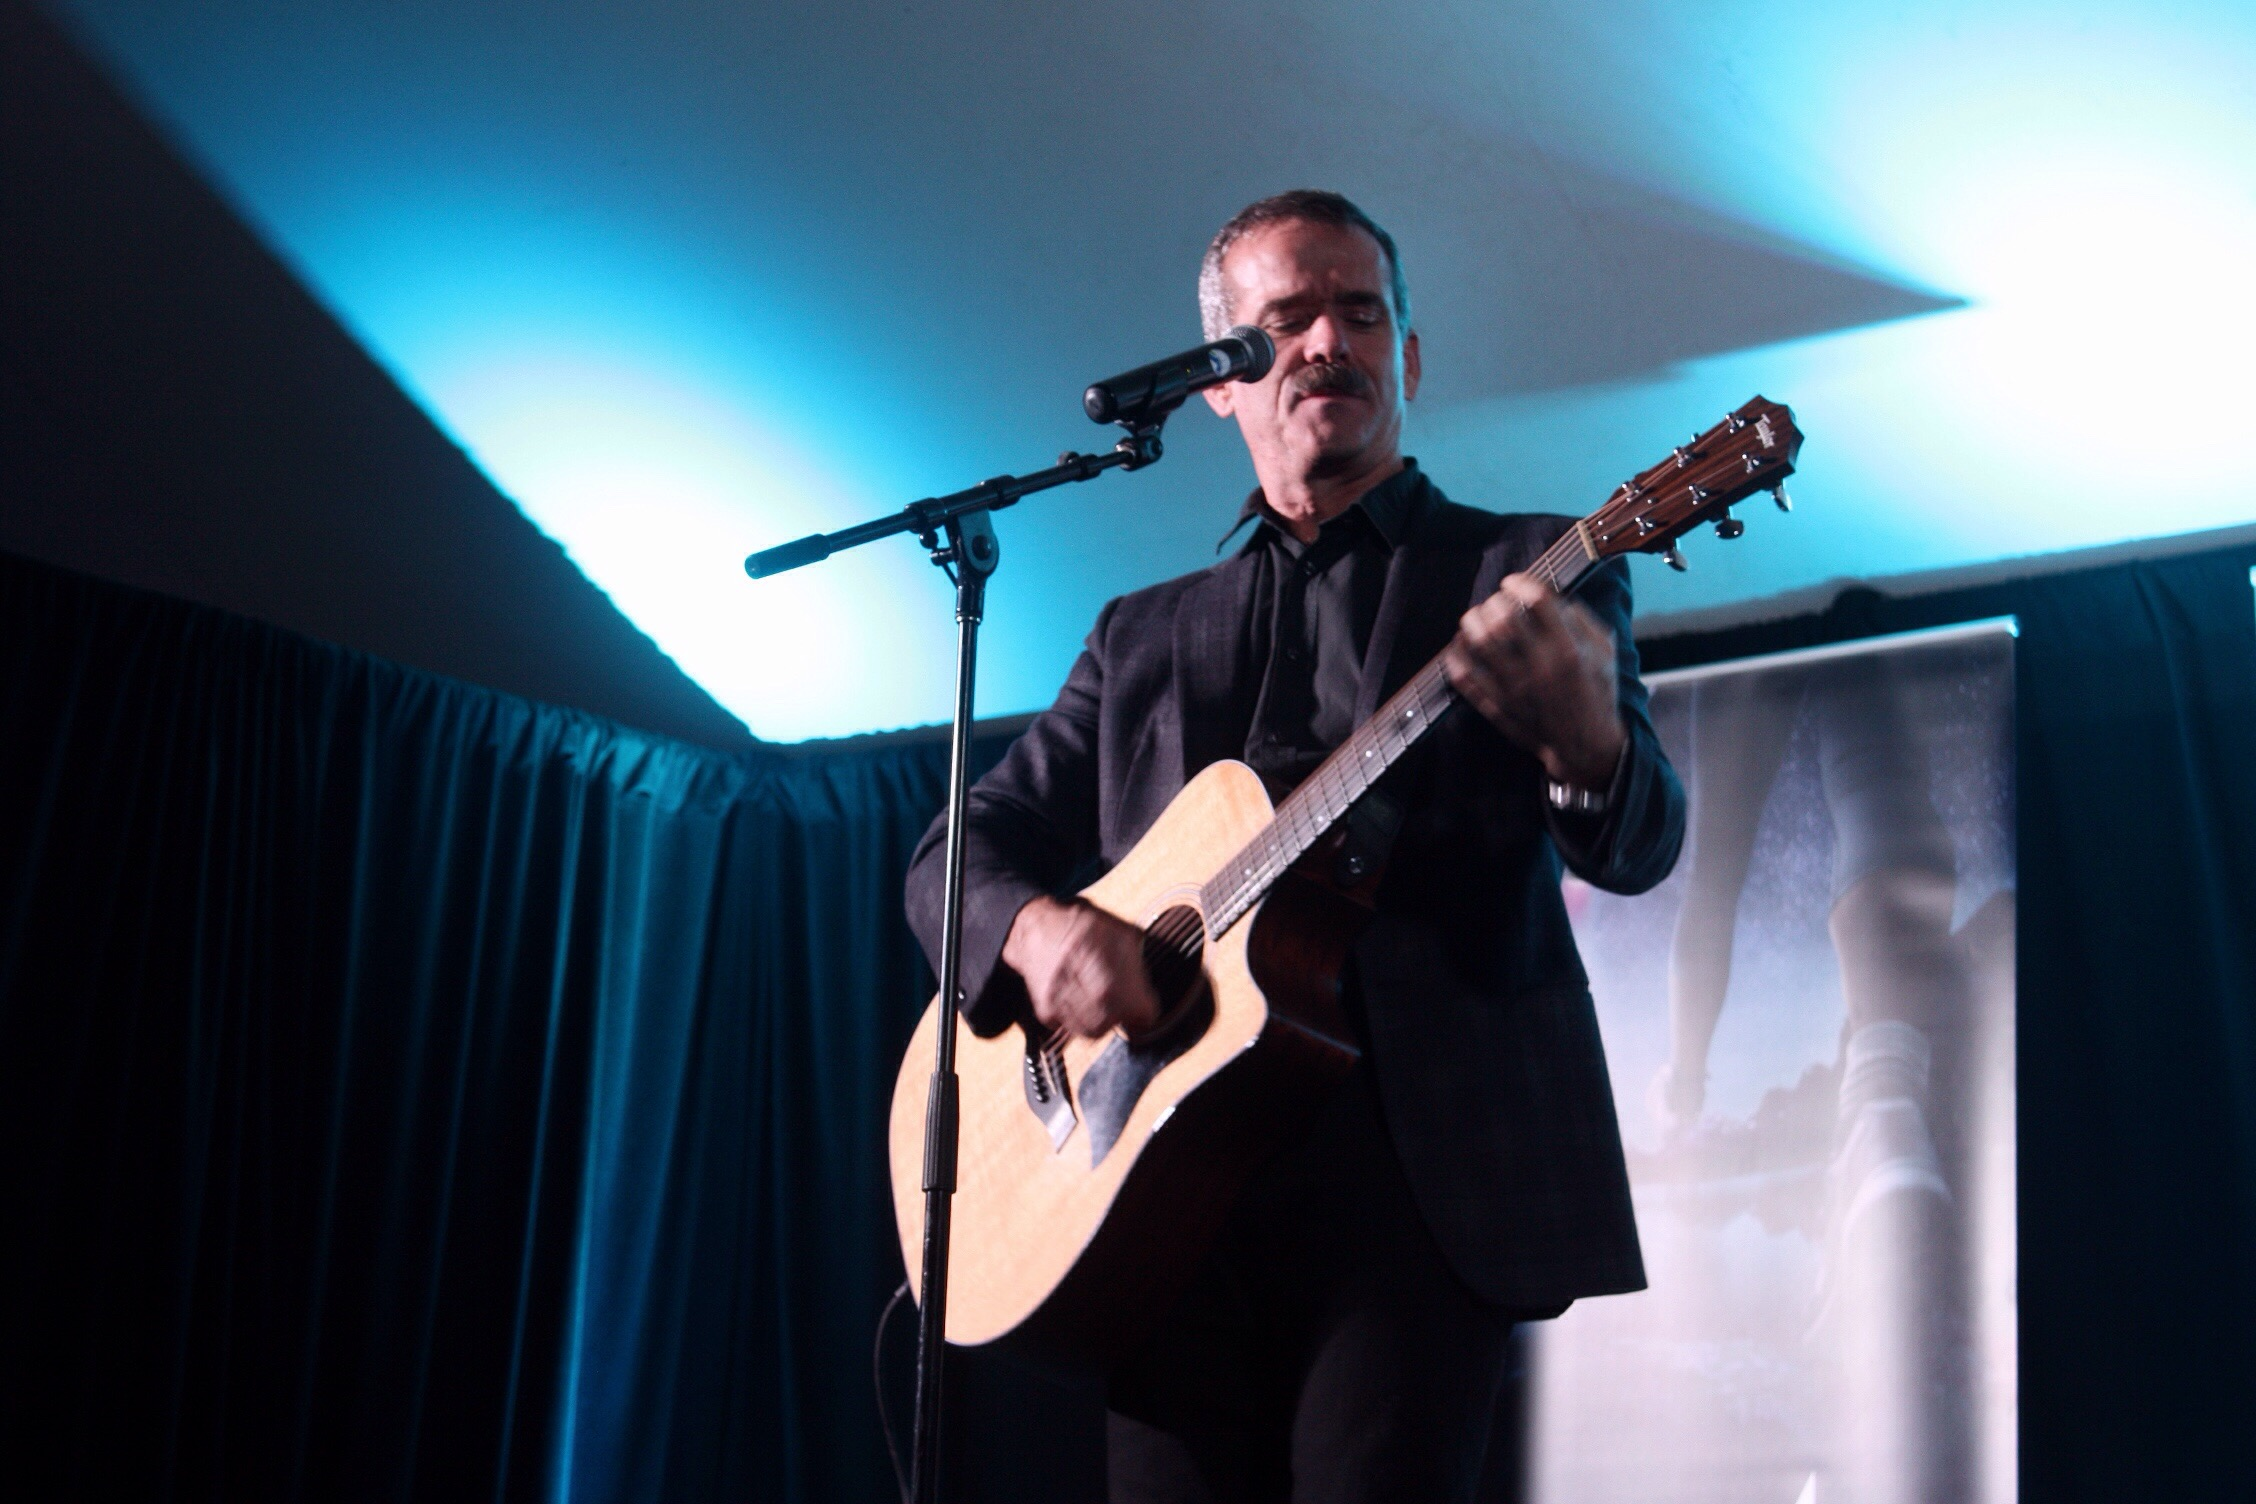 Col. Chris Hadfield ended his inspirational session with some audience questions. And there's always time for music. Photo copyright Sheri Landry